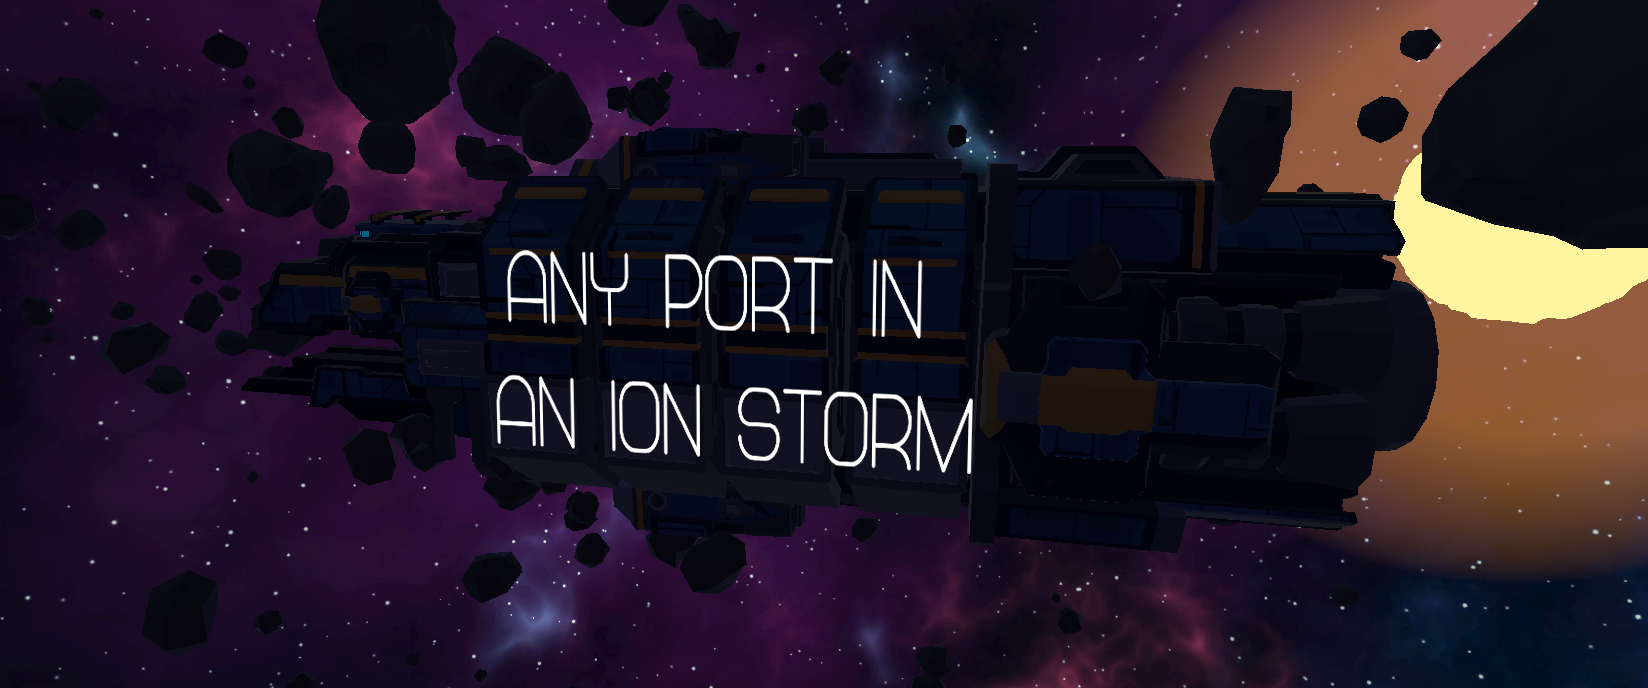 Any port in an ion storm